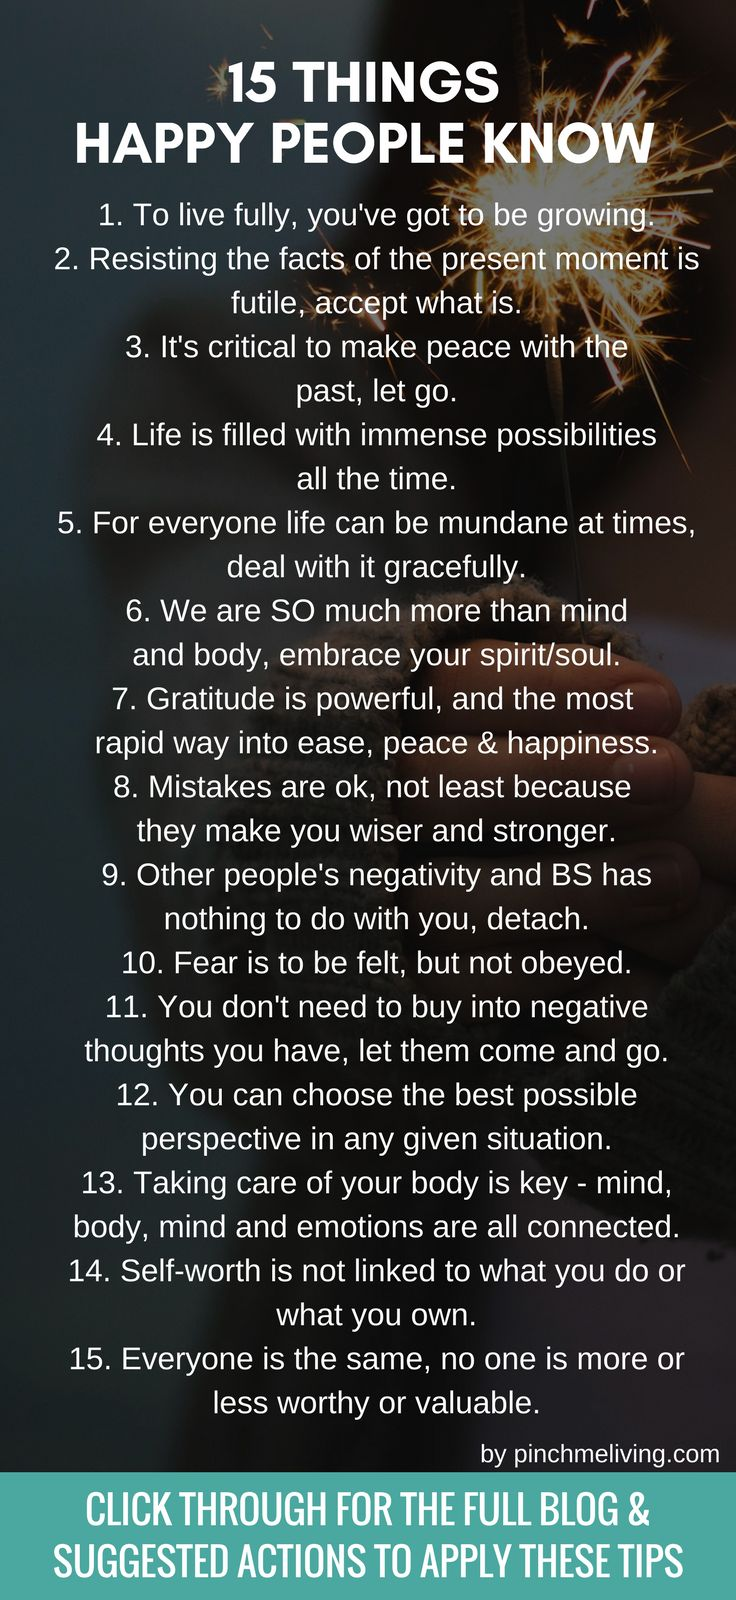 I live by 1,3,4,7,9,10,14.